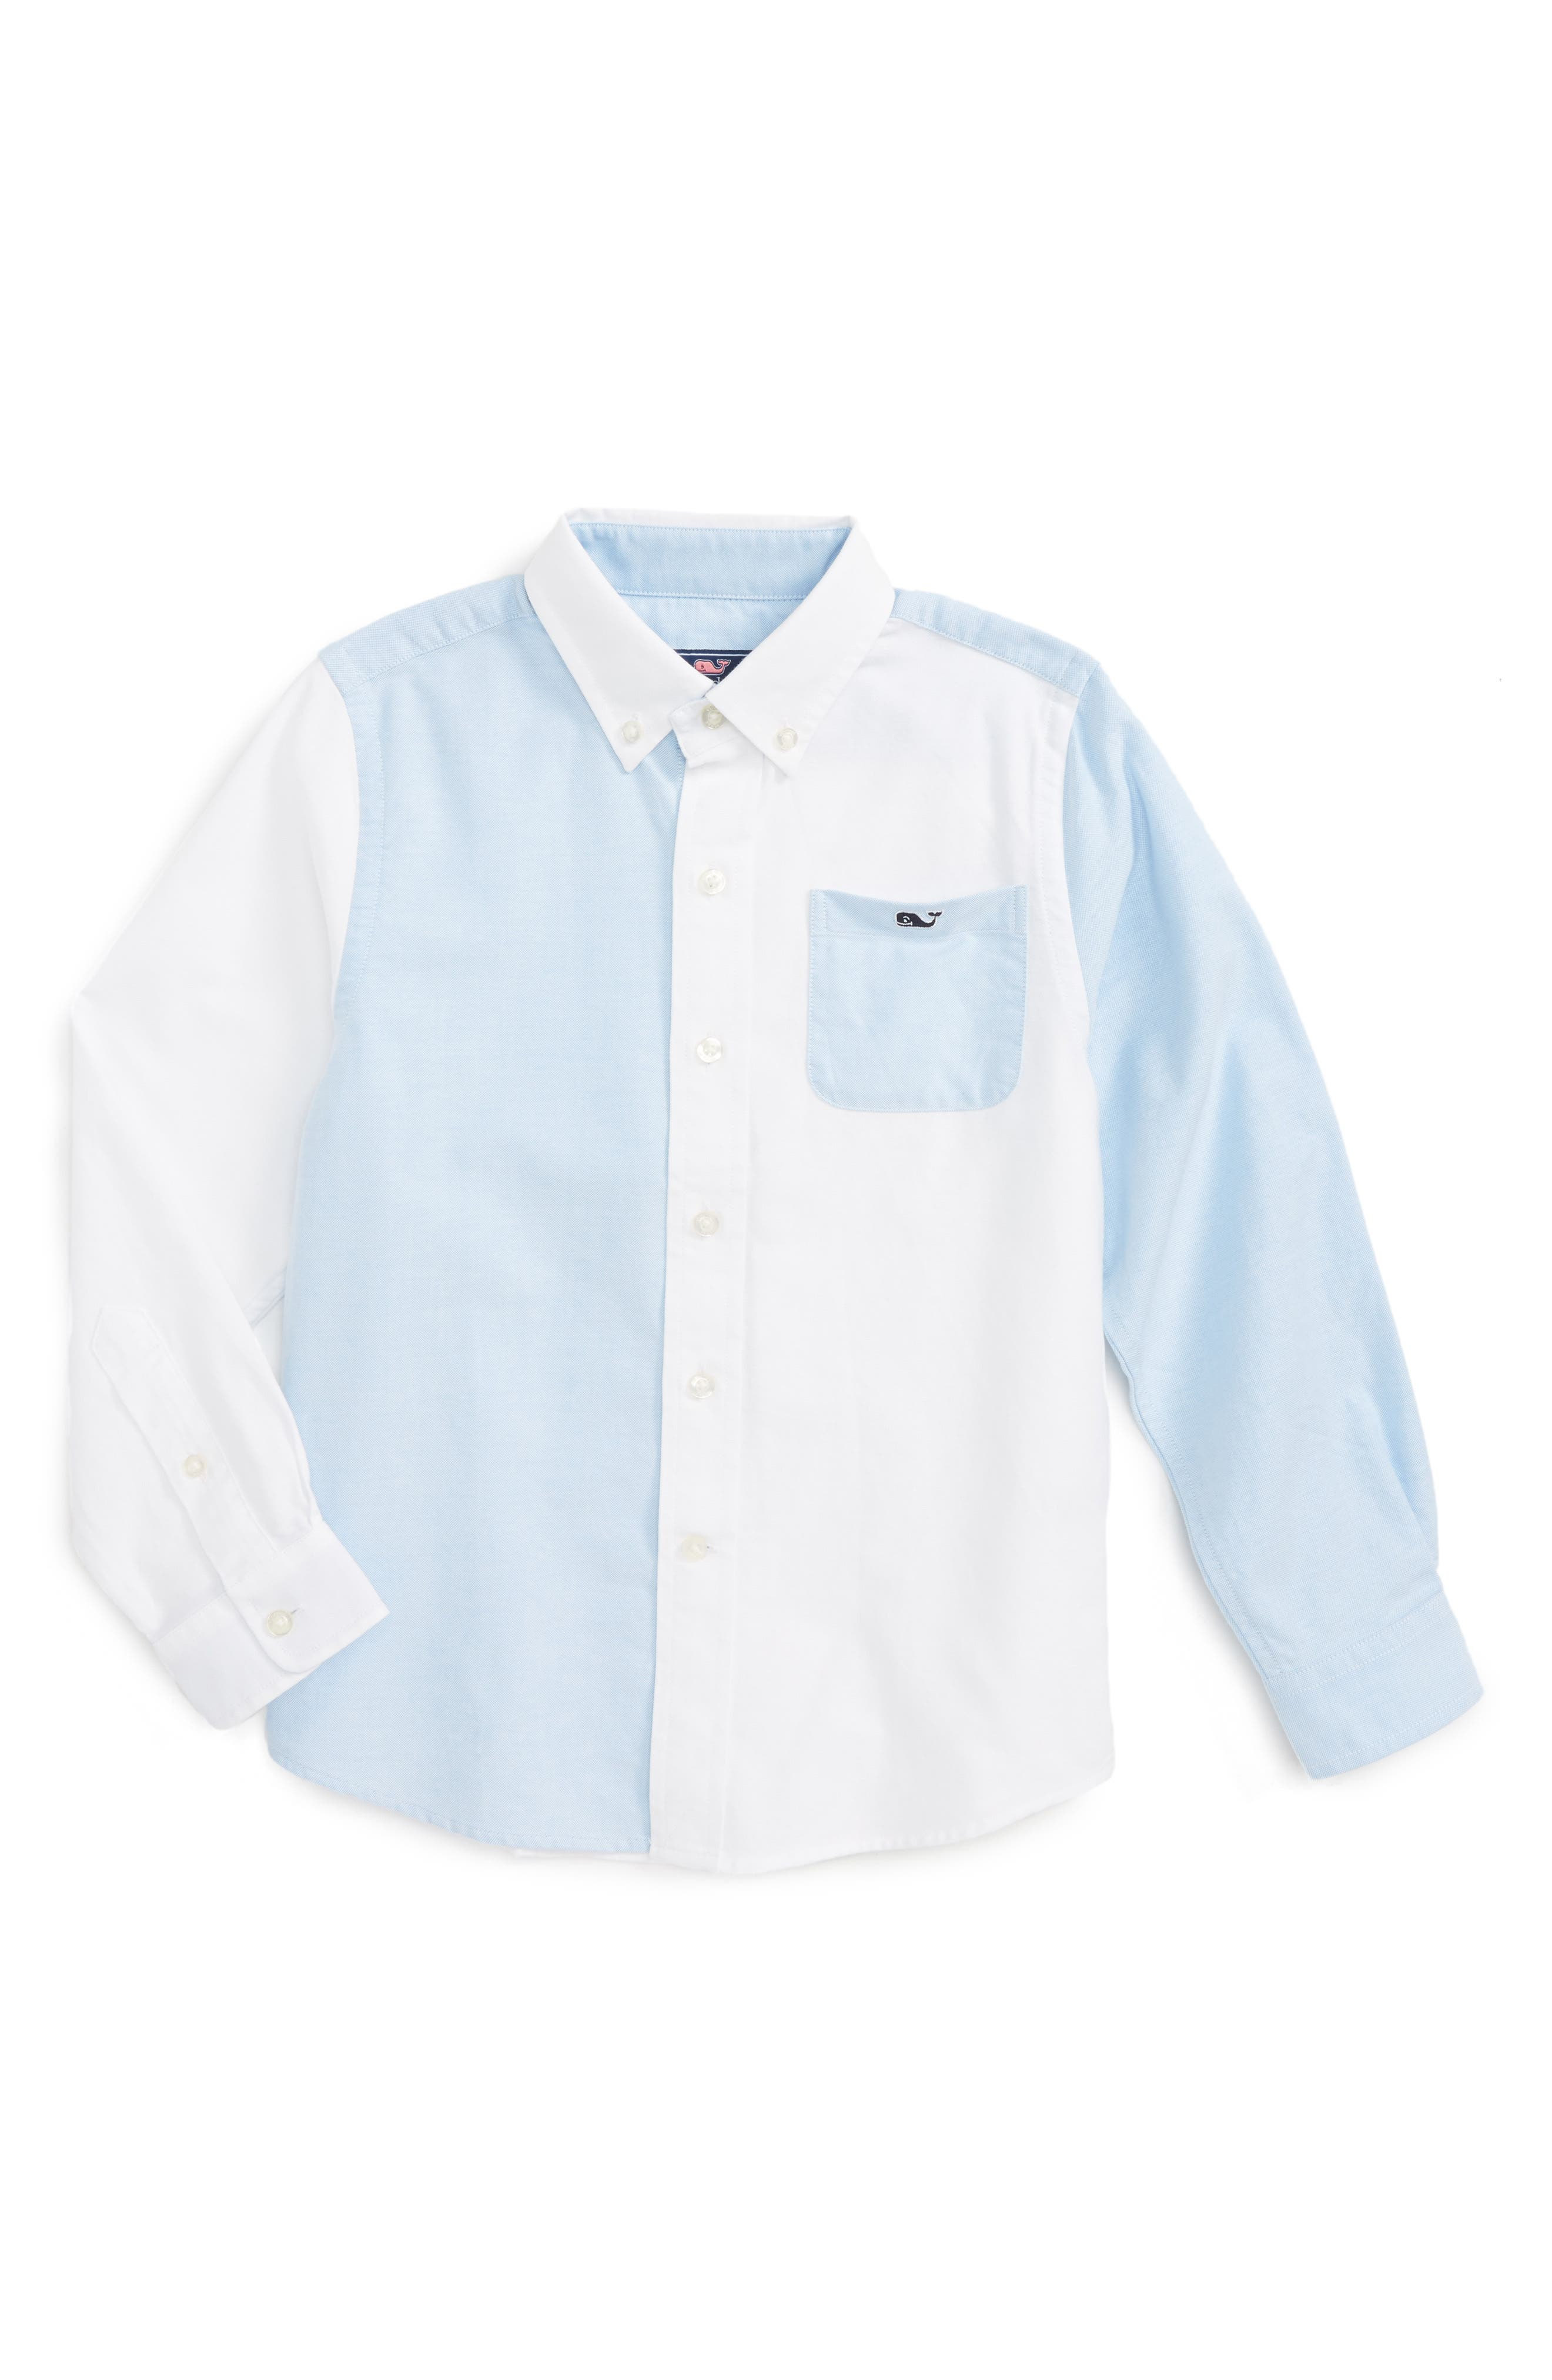 Party Whale Oxford Shirt,                         Main,                         color, 408